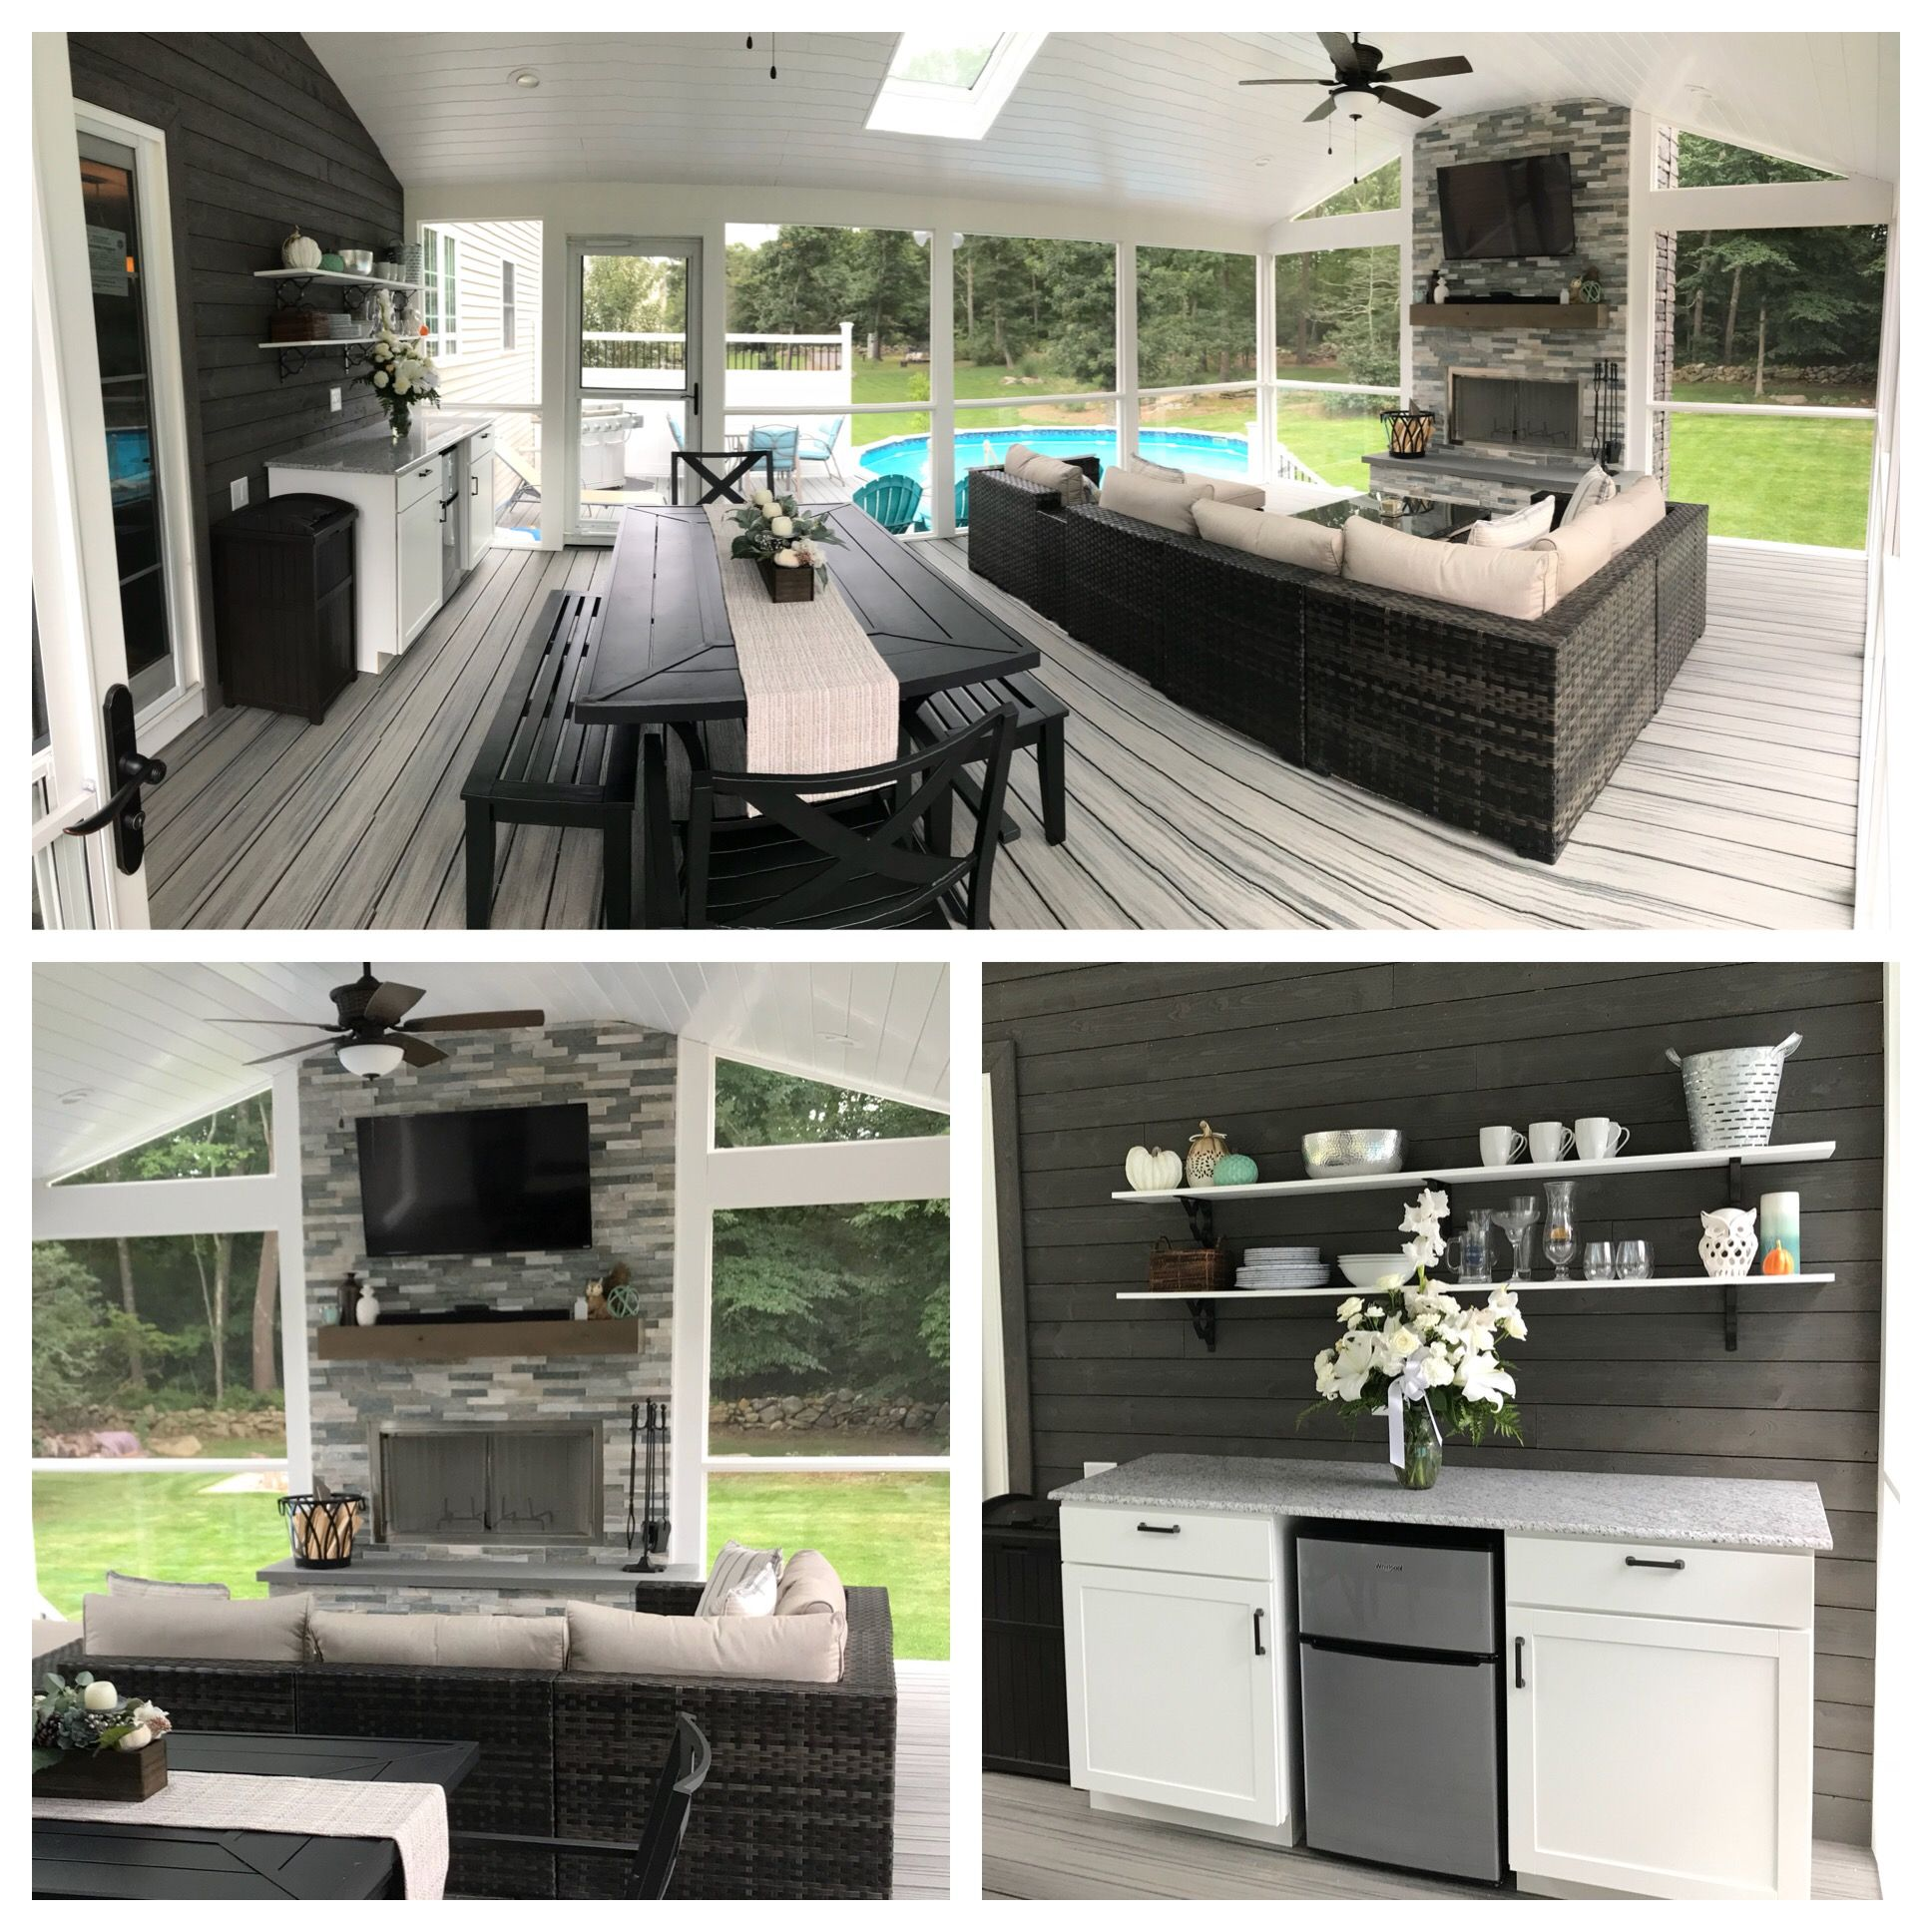 Our New Screened In Deck Trex Island Mist Floors Villawood Wood Burning Outdoor Fireplace Azek Tri Deck Ideas Home Depot Outdoor Fireplace Screened In Deck